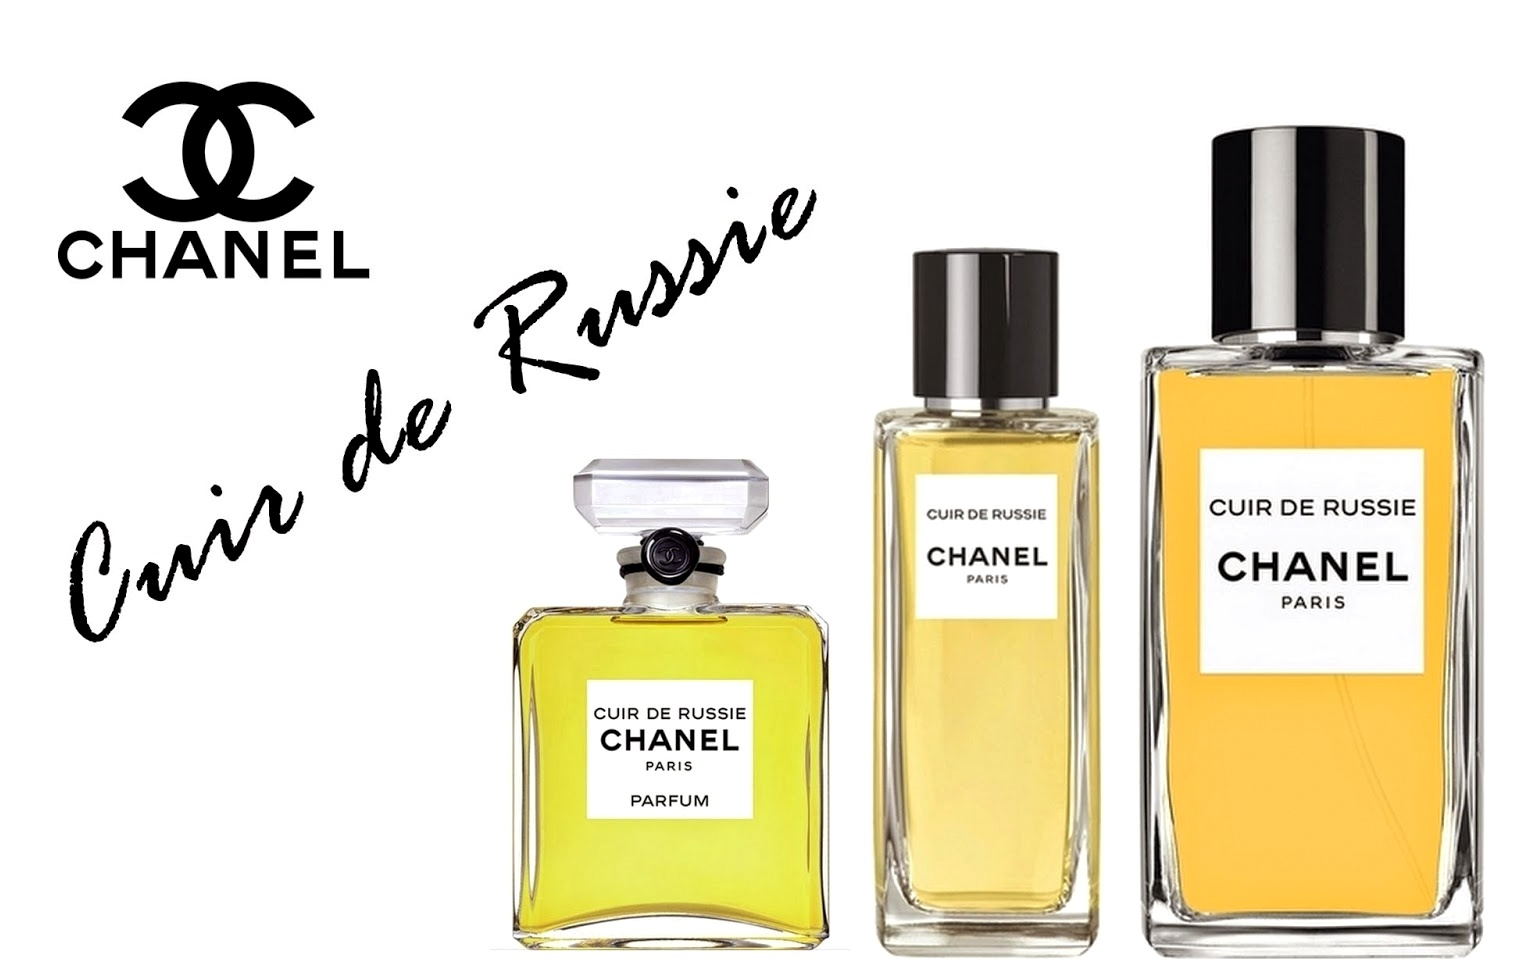 chanel perfume bottles cuir de russie by chanel c1924. Black Bedroom Furniture Sets. Home Design Ideas